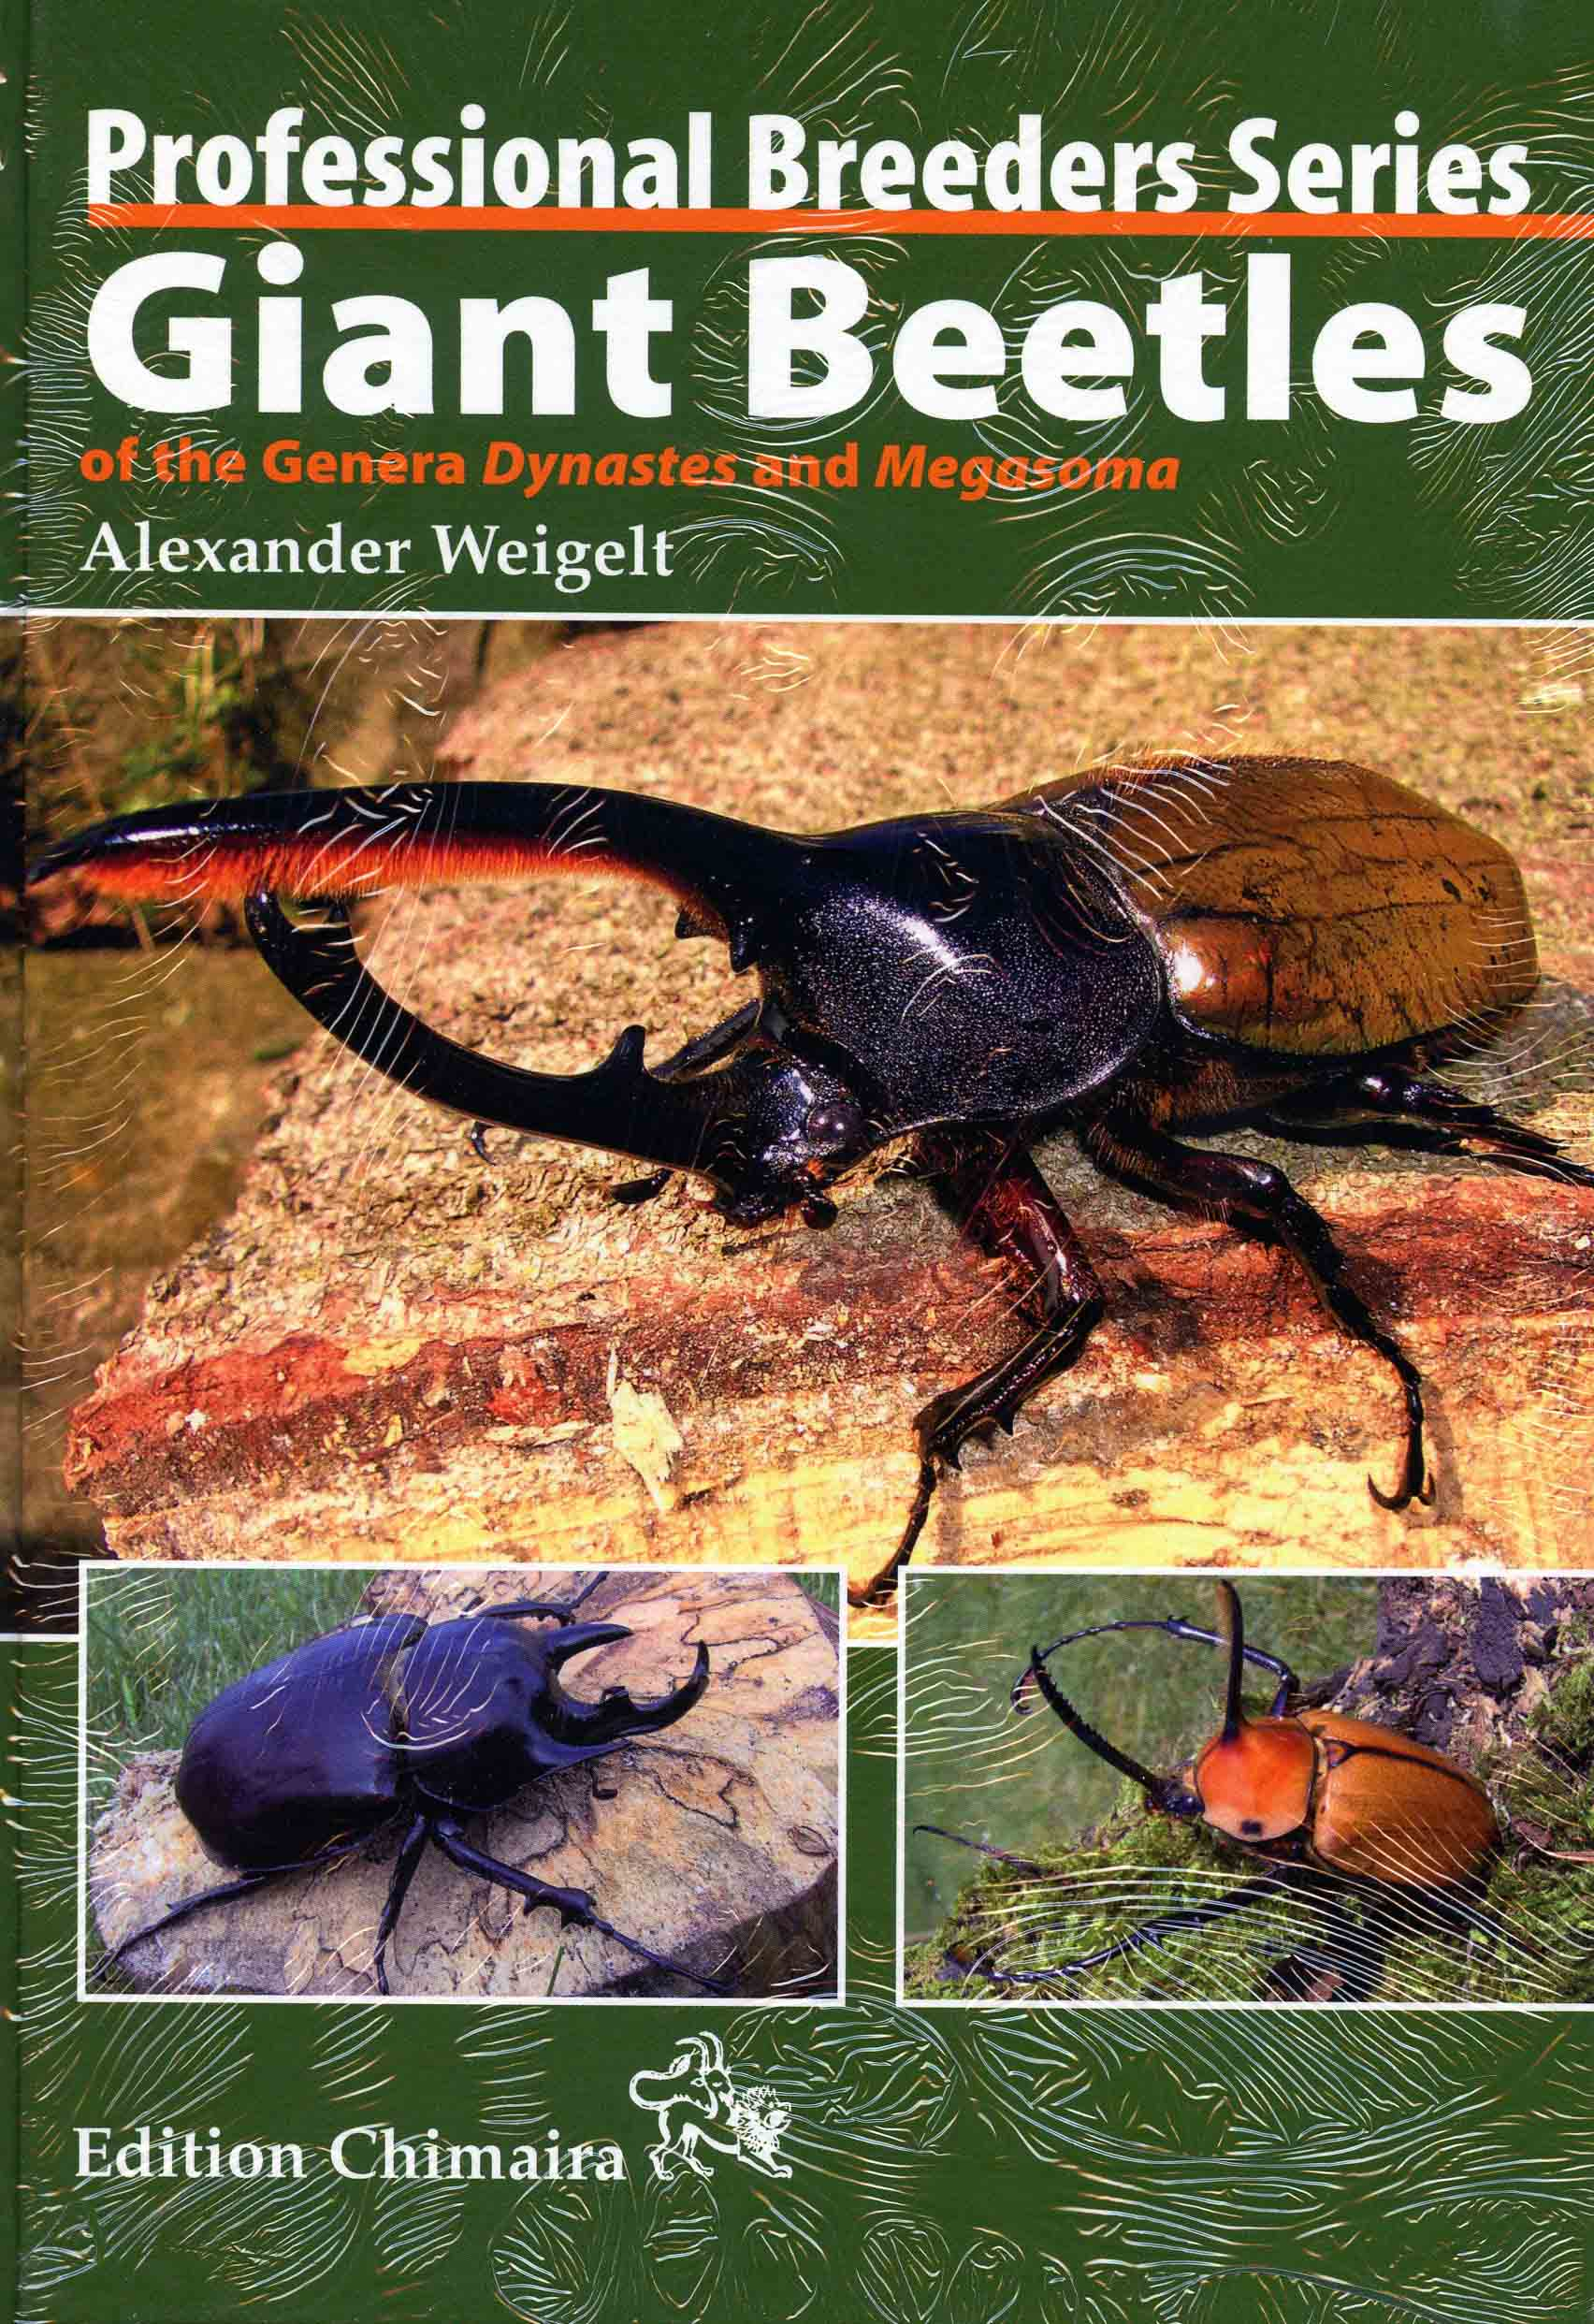 Image for Giant Beetles of the Genera Dynastes and Megasoma,